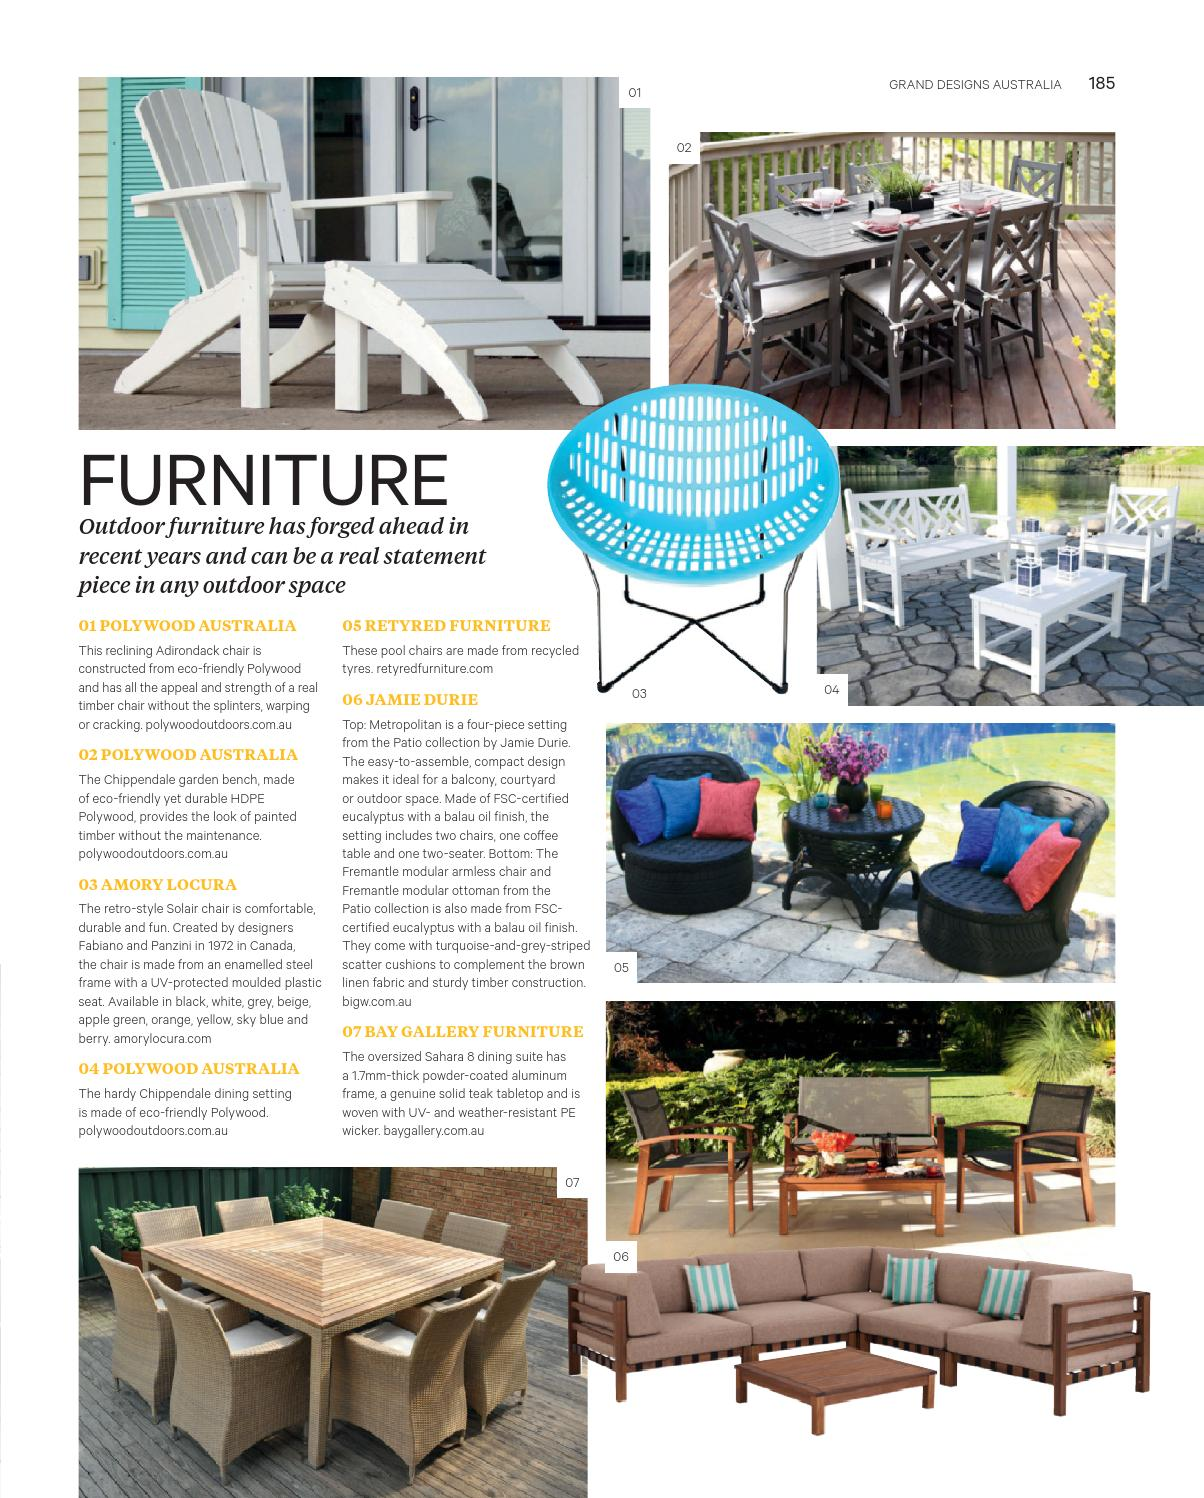 Miraculous Grand Designs Australia Issue 2 4 By Grand Designs Australia Squirreltailoven Fun Painted Chair Ideas Images Squirreltailovenorg